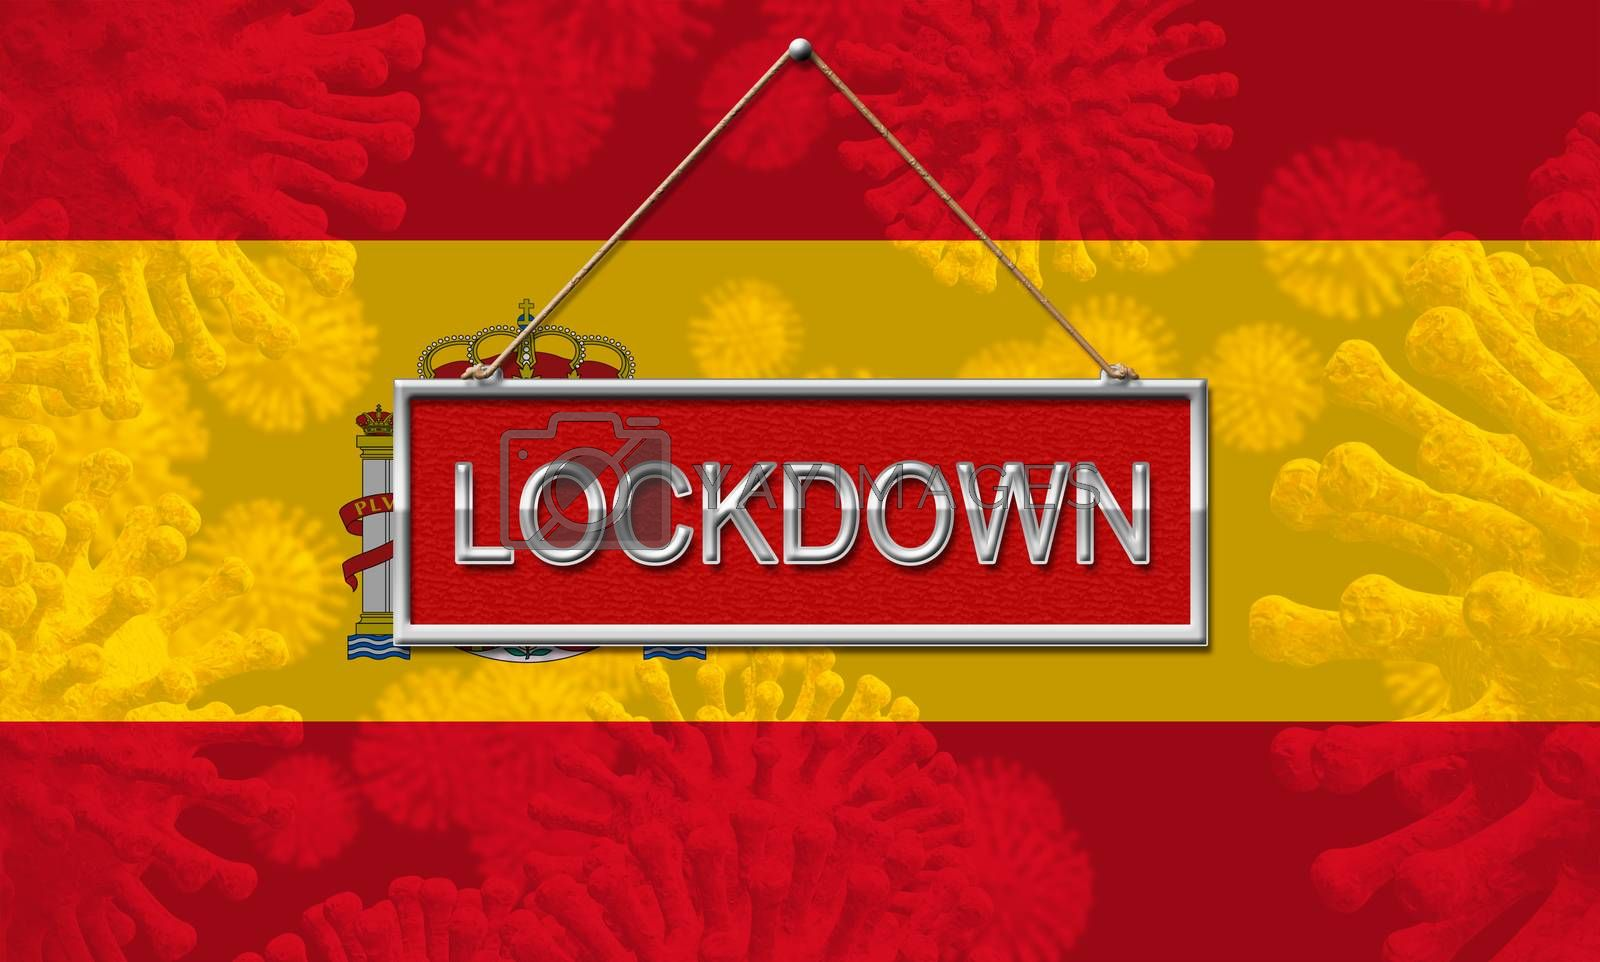 Spain lockdown stopping covid19 epidemic or outbreak. Covid 19 Spanish ban to restrict disease infection - 3d Illustration